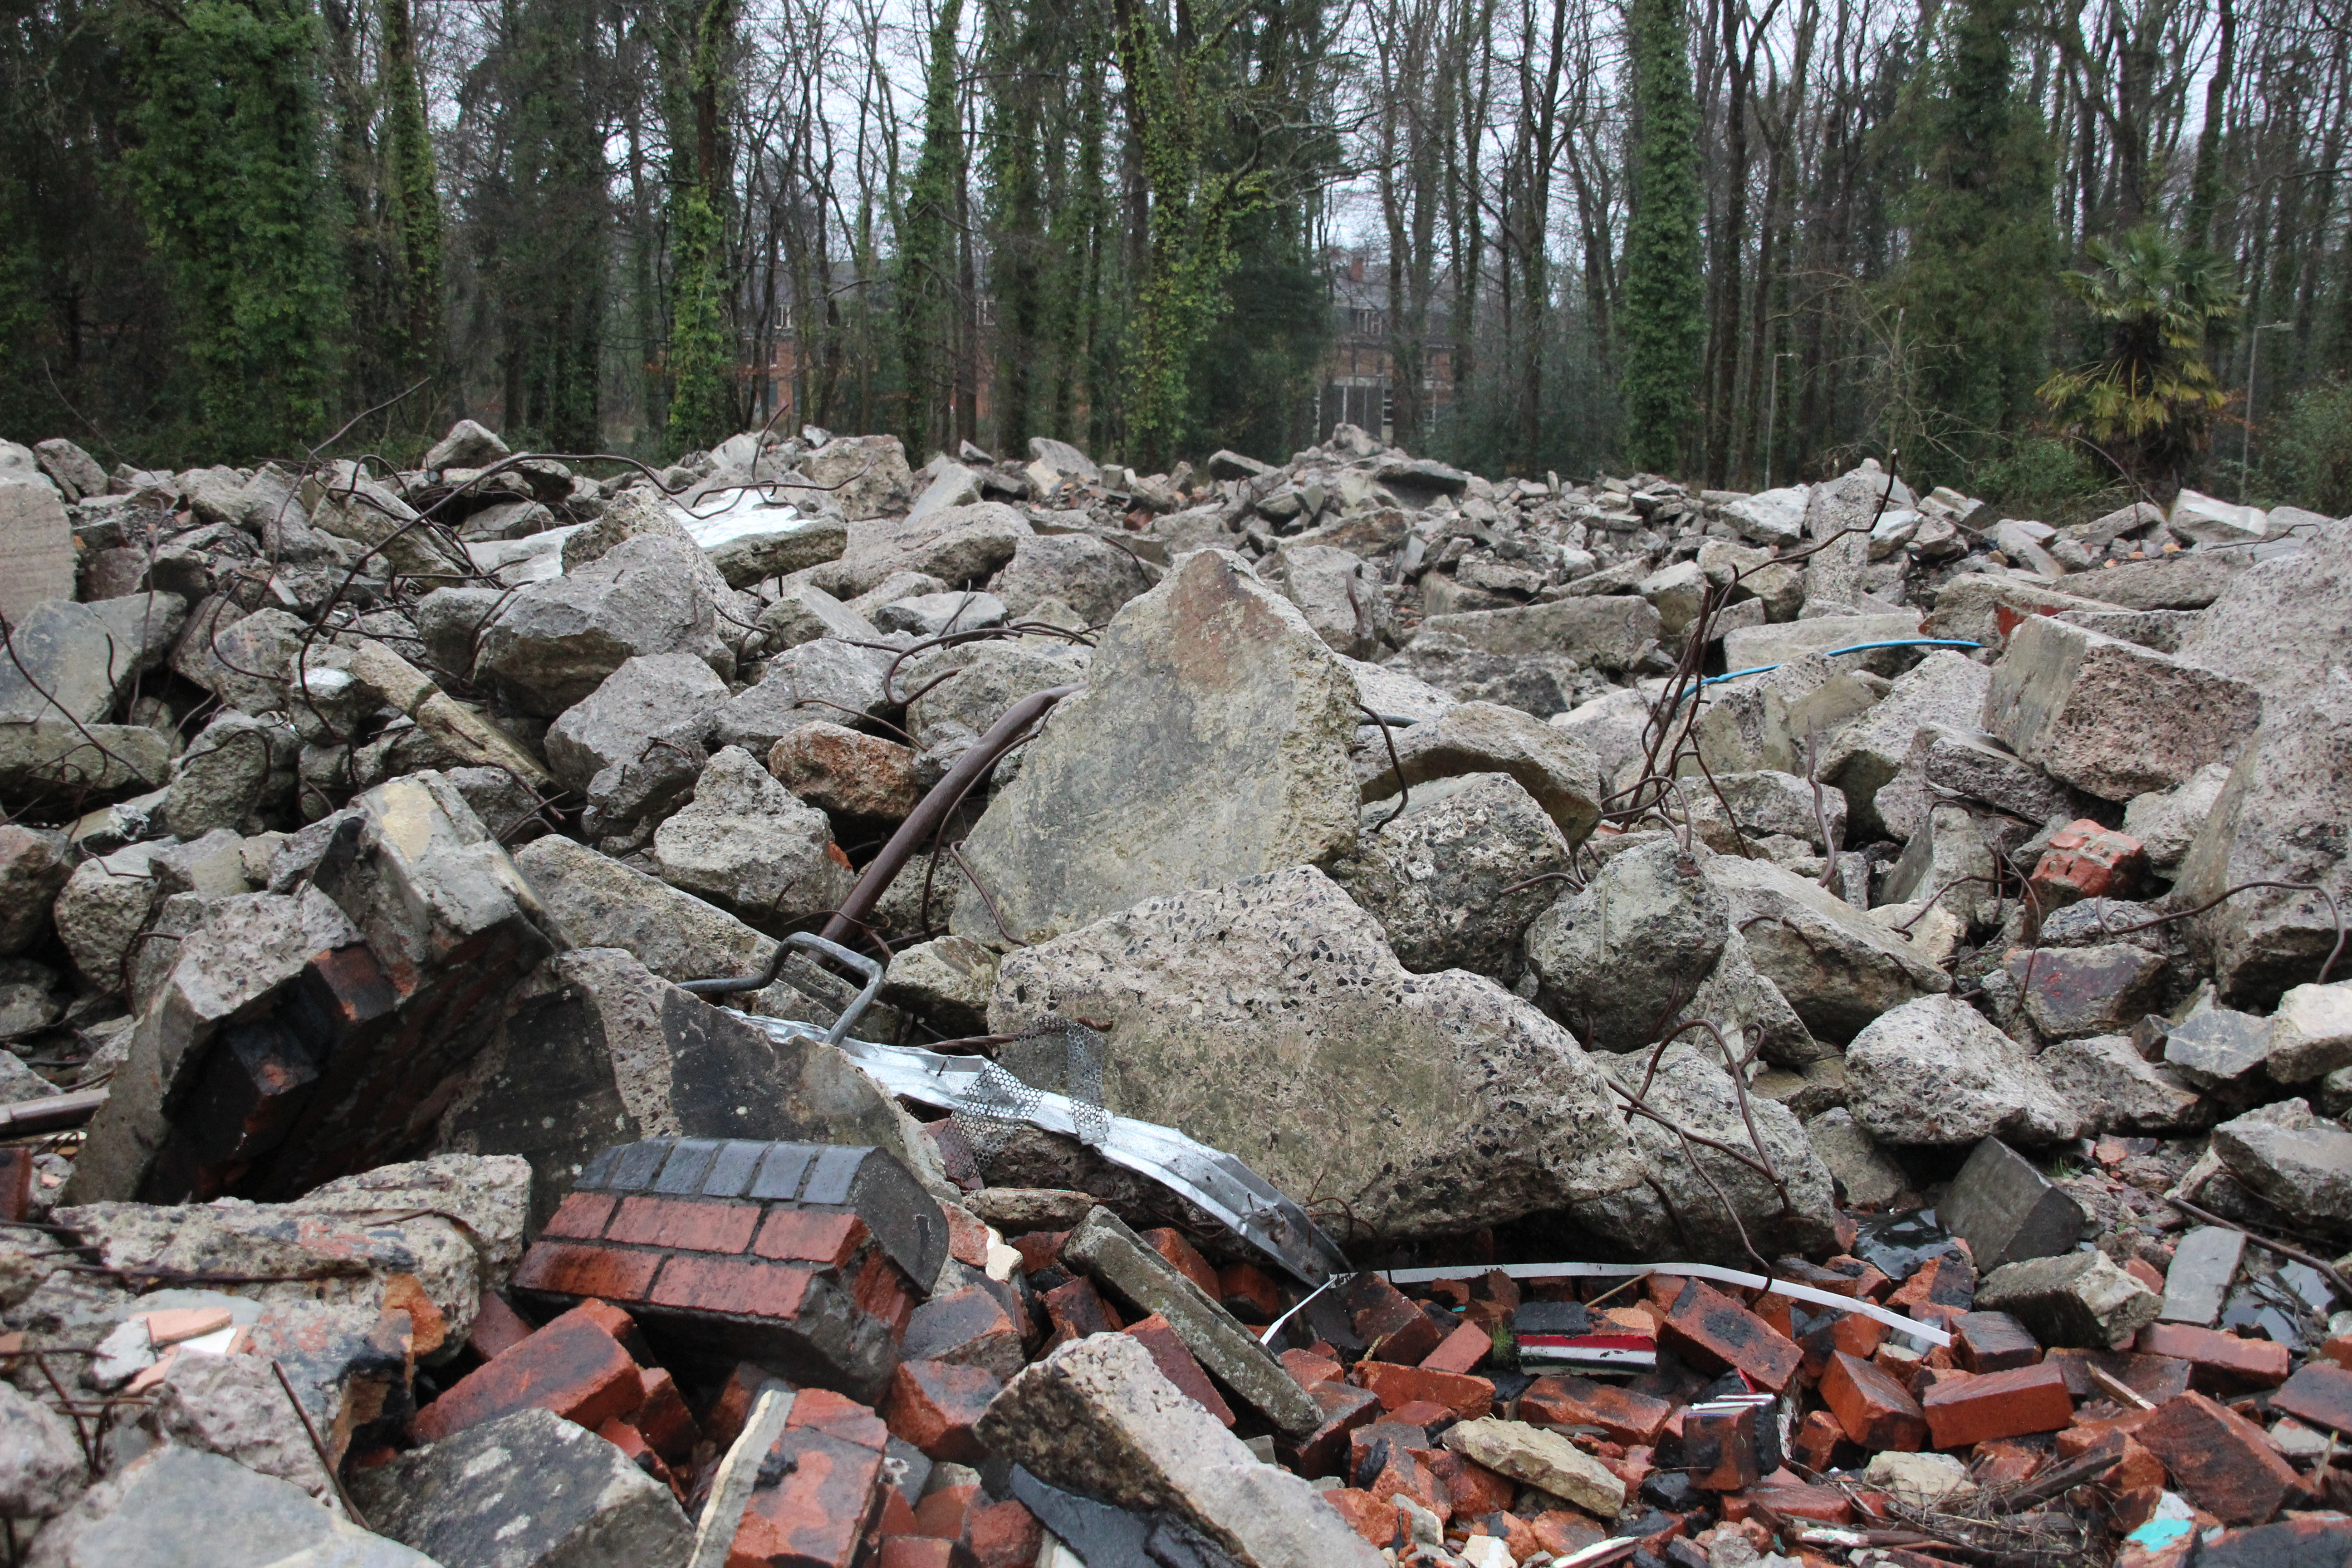 """beneath the rubble essay """"a lot of schools collapsed so people are searching for children that may be still alive beneath the rubble, but in terms of emergency relief from official agencies i've really seen nothing,"""" herz told us."""